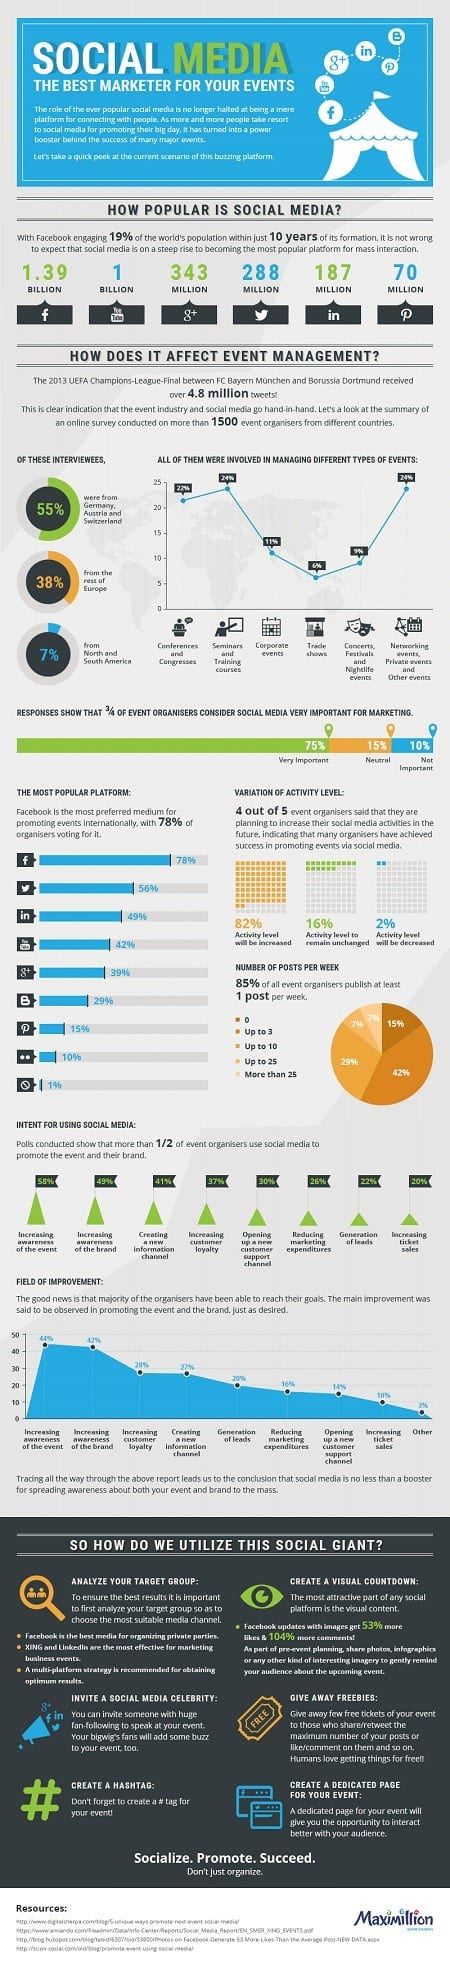 Using Social Media for event management Infographic